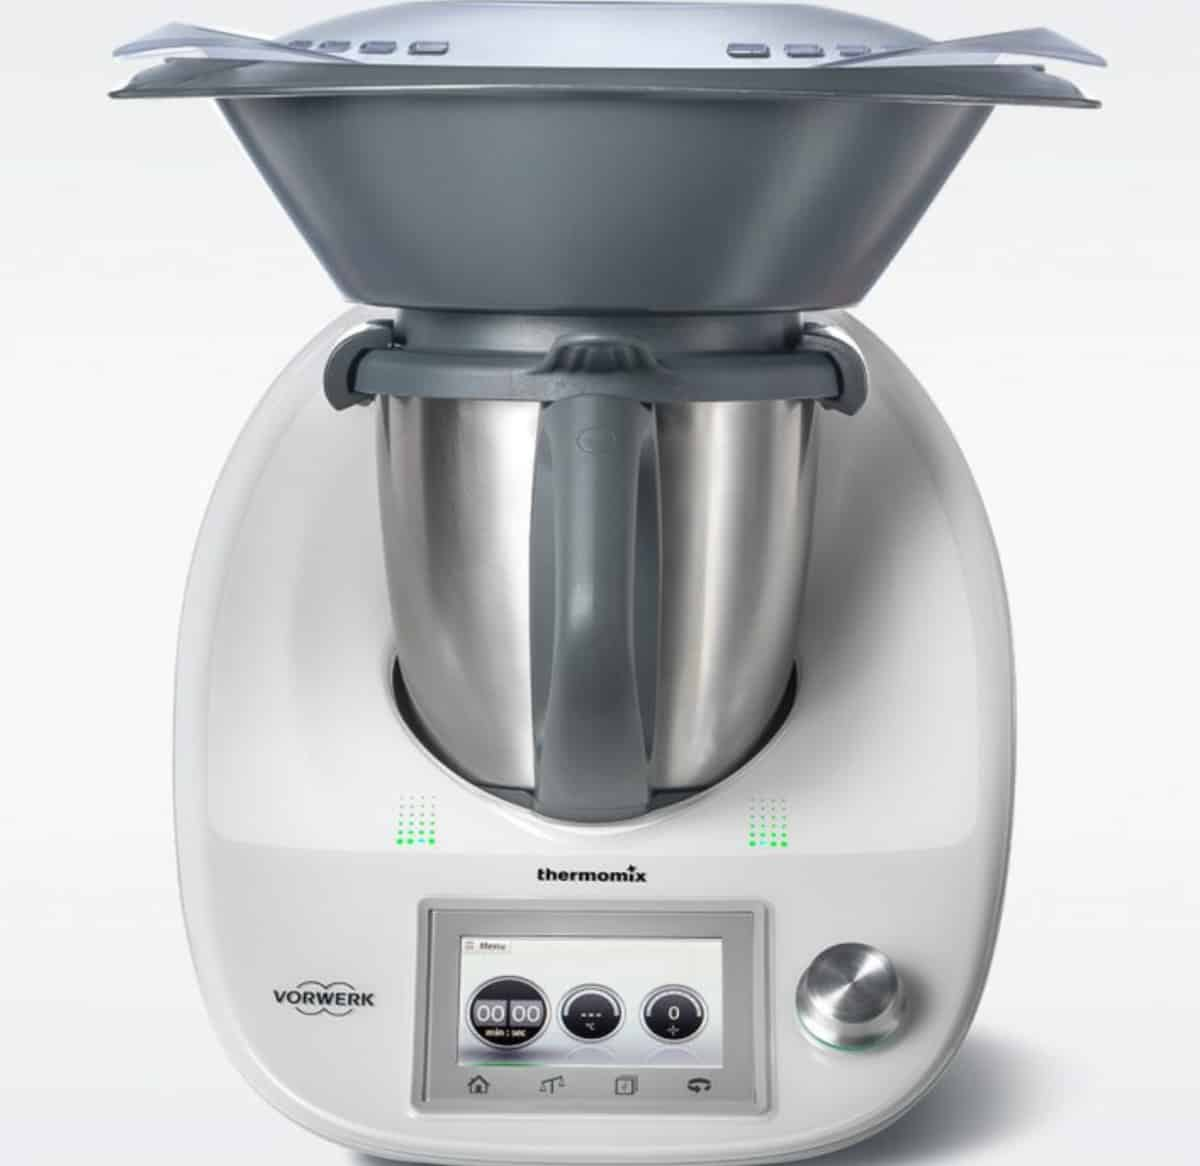 An image of a Thermomix TM5 model.